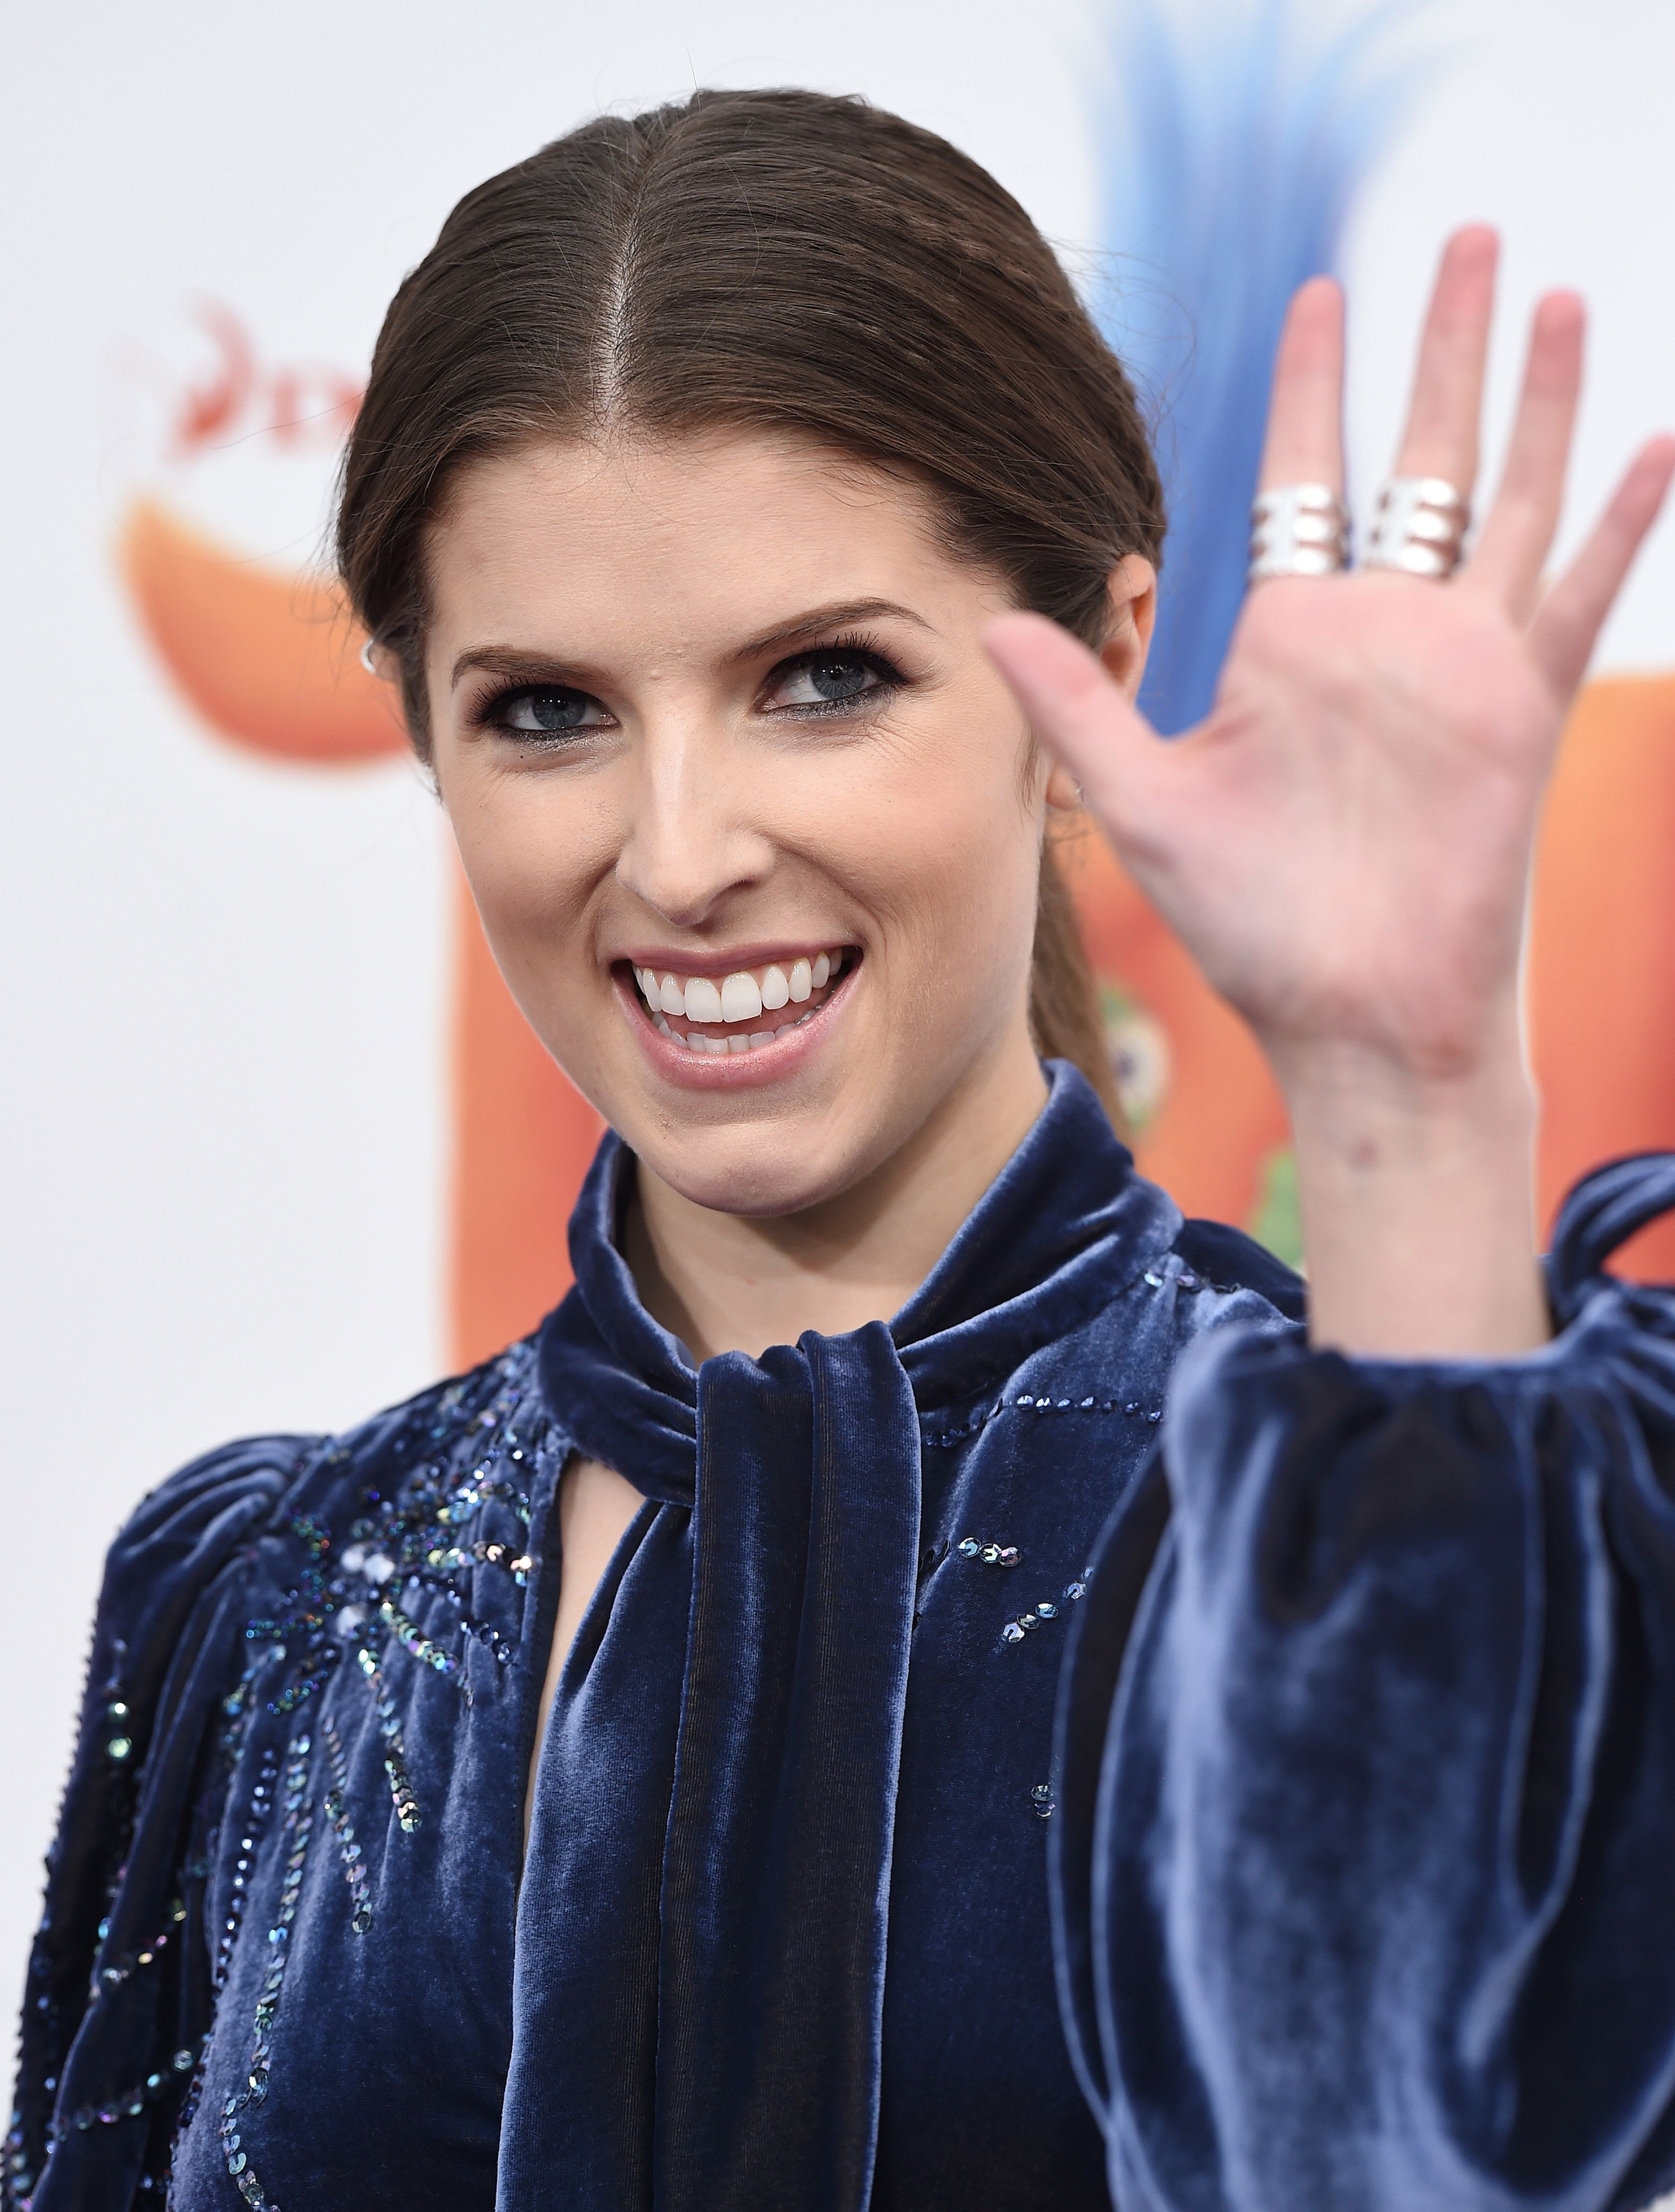 Anna Kendrick Had The Best Response To A Guy Giving Her An